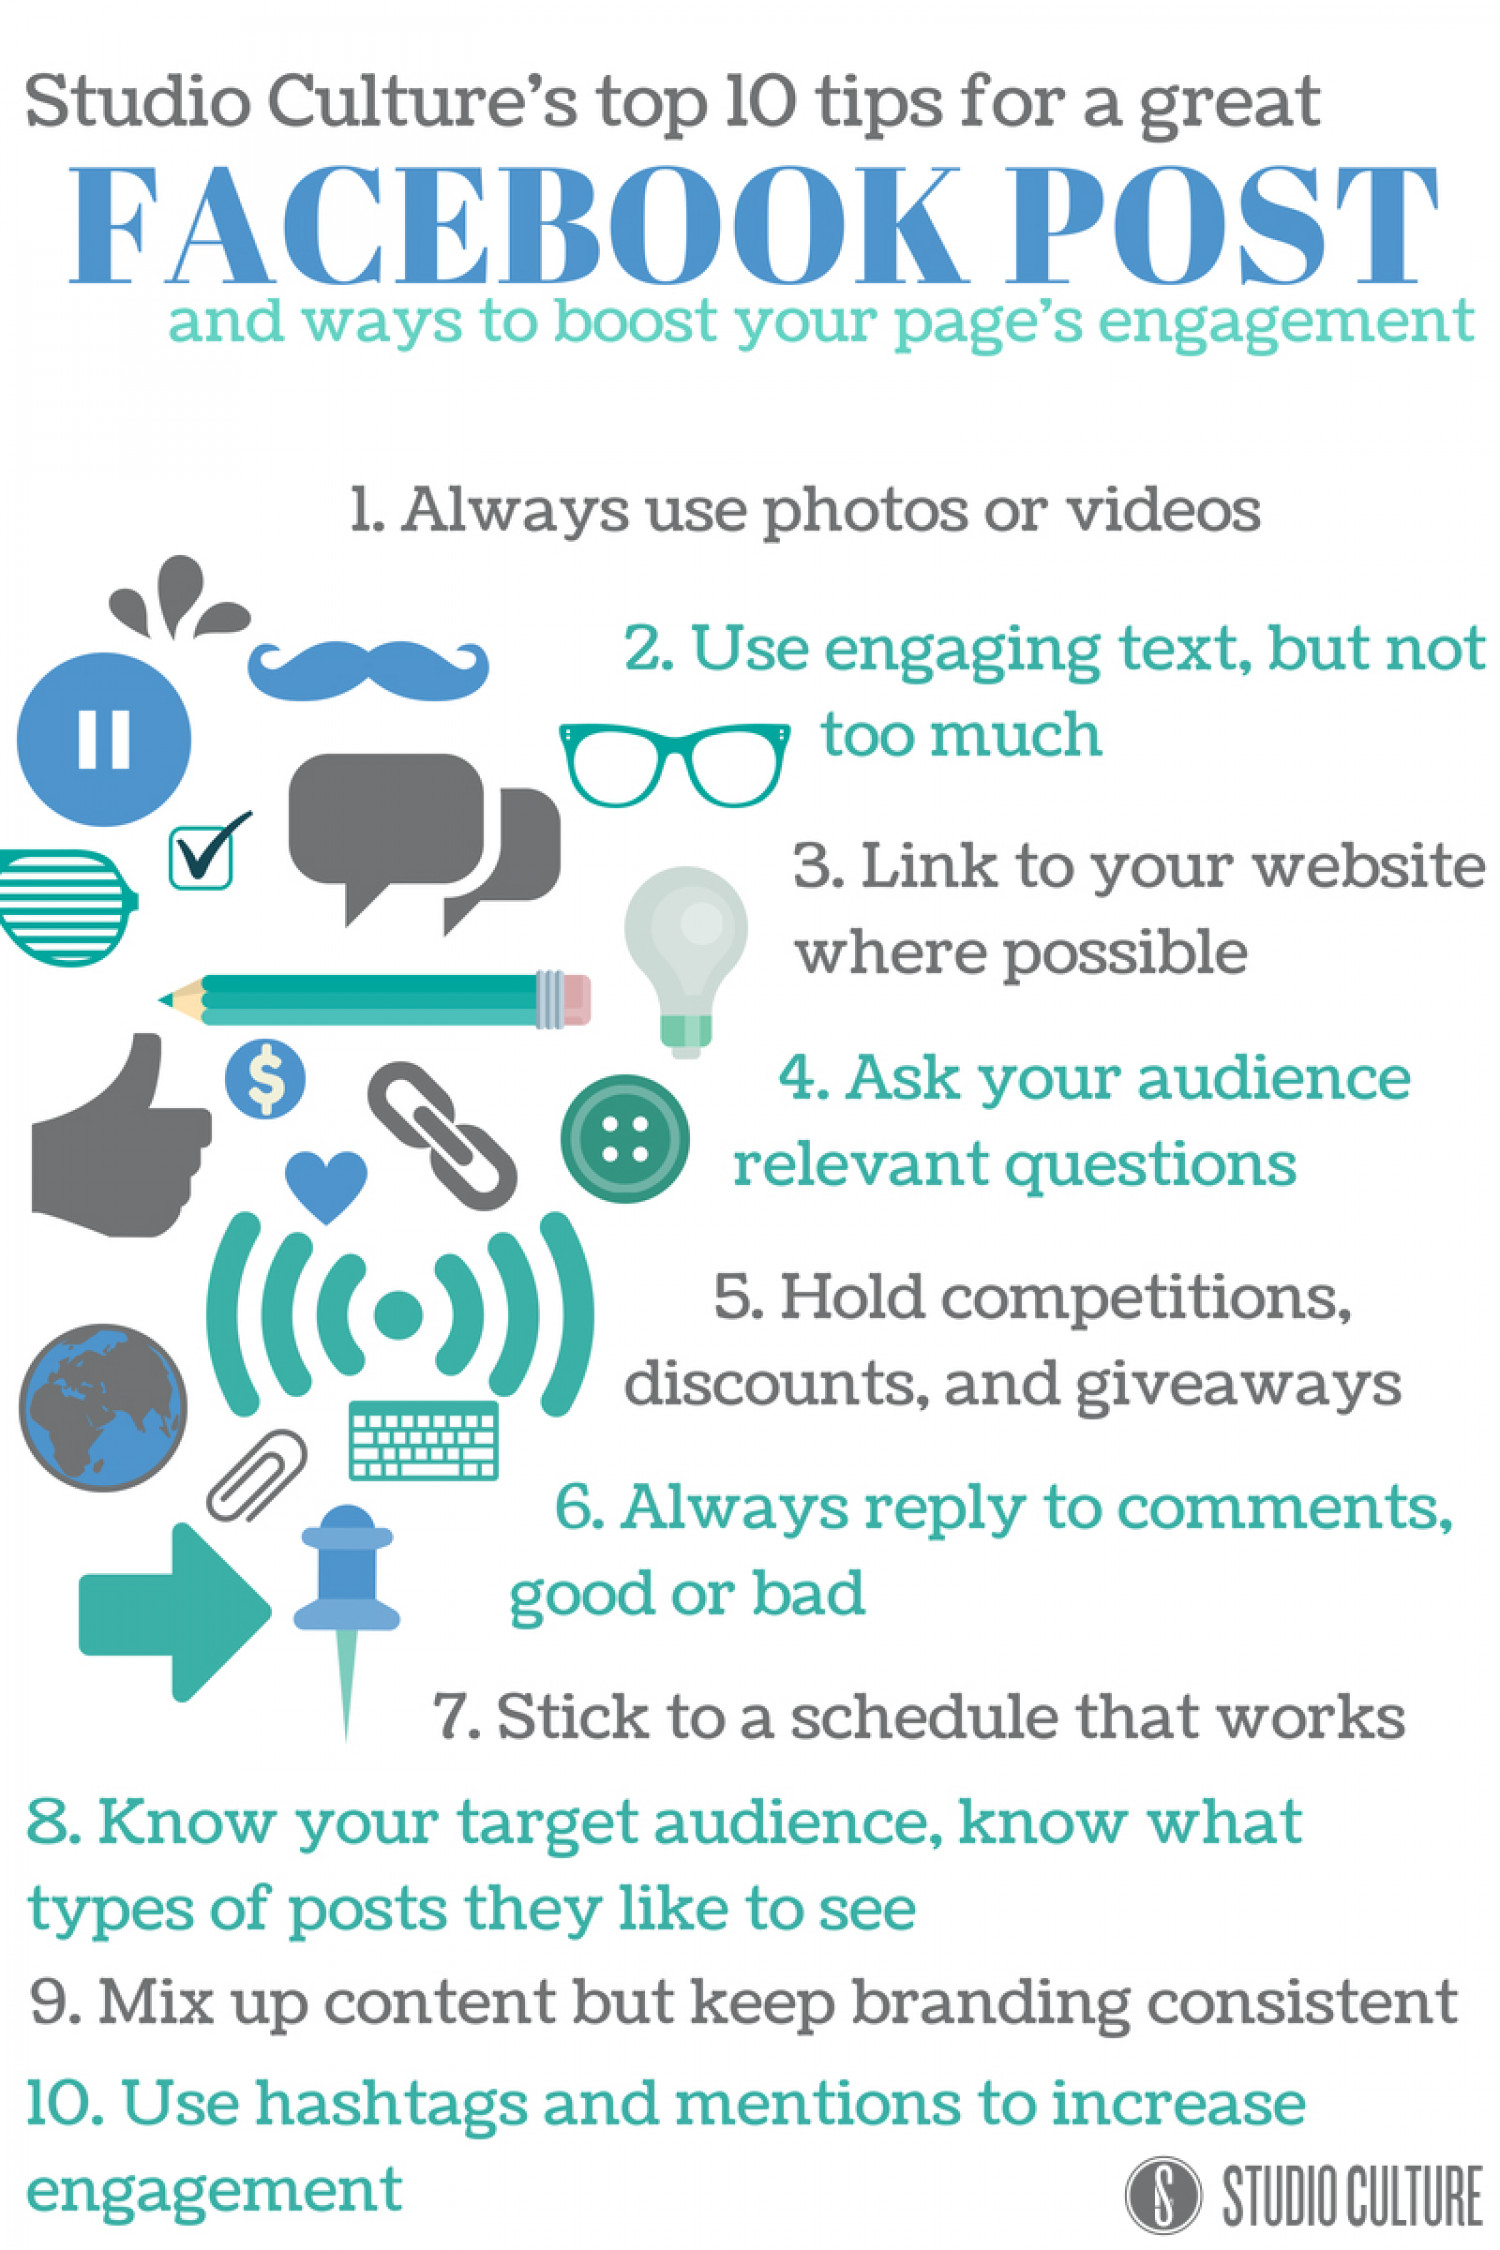 Top 10 Tips For A Great Facebook Post And Ways To Boost Your Page's Engagement Infographic